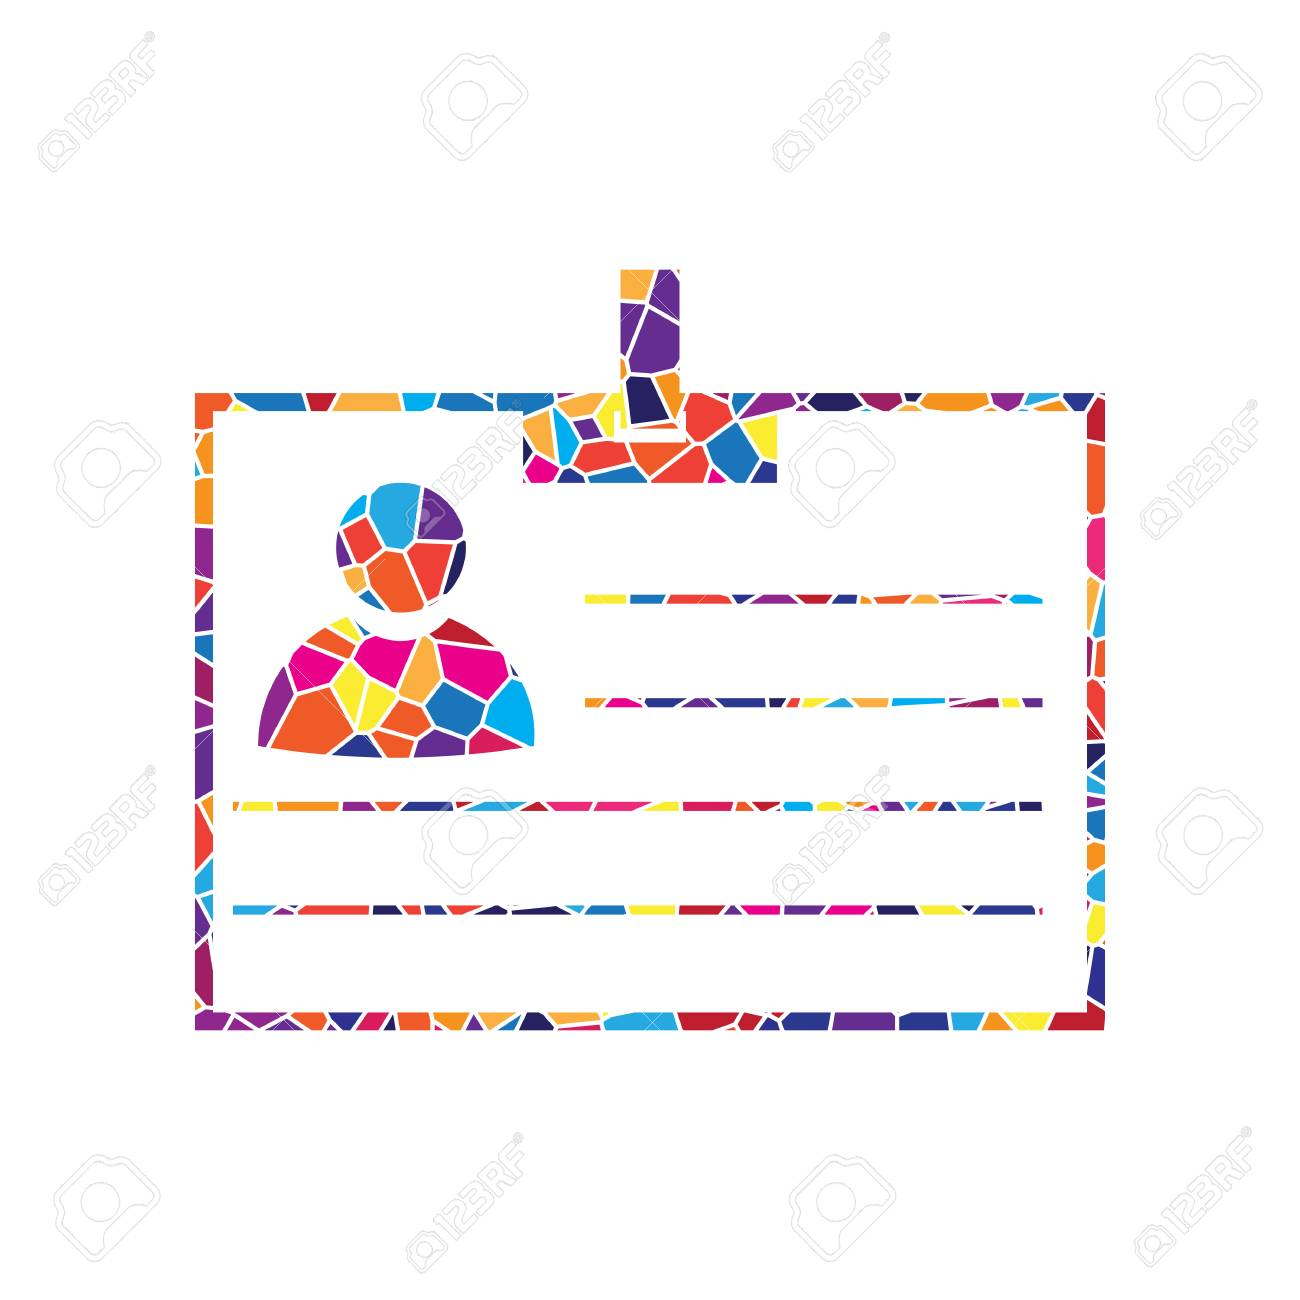 hight resolution of stained glass icon on white background colorful polygons